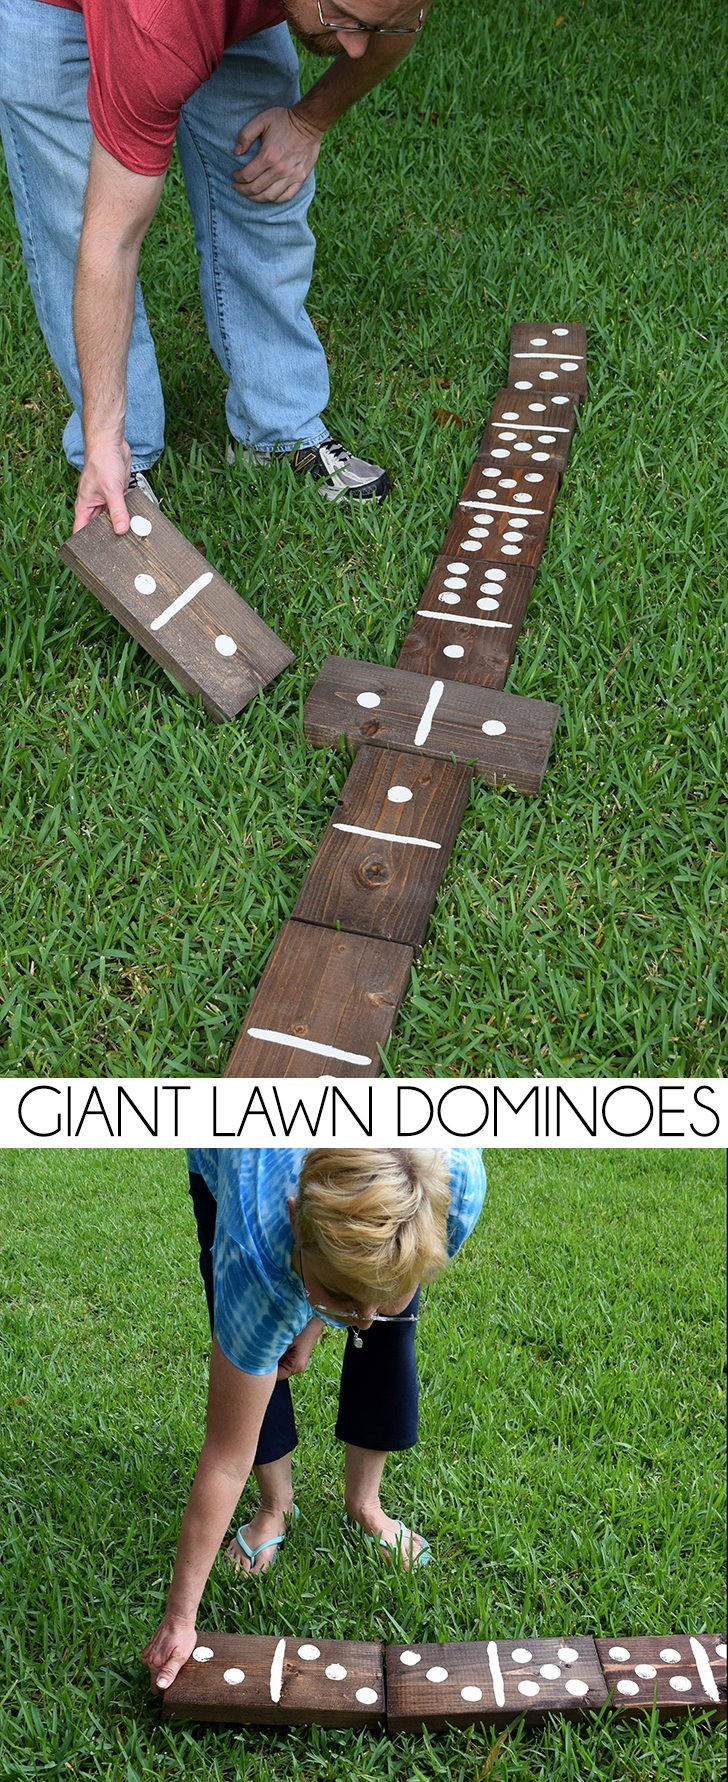 Giant Lawn Dominoes